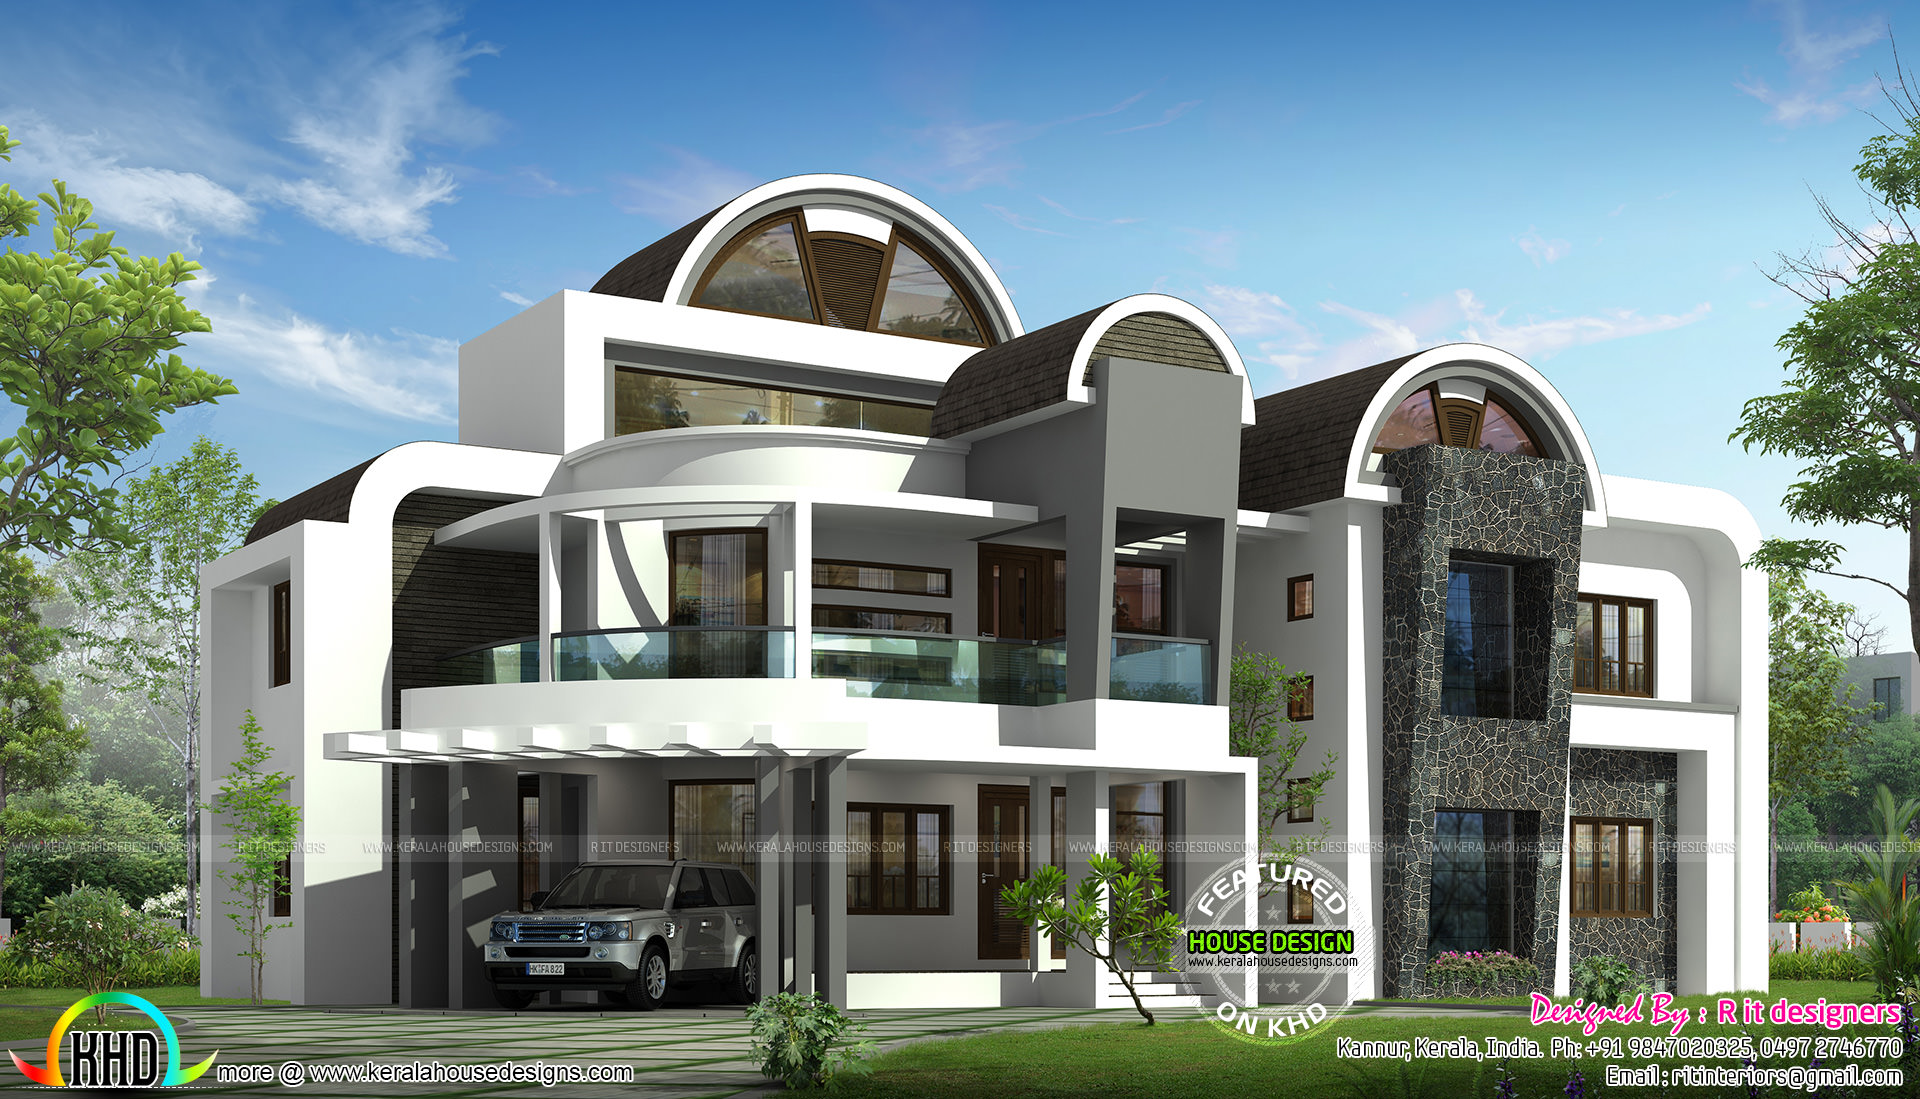 Half round roof unique house design - Kerala home design ...